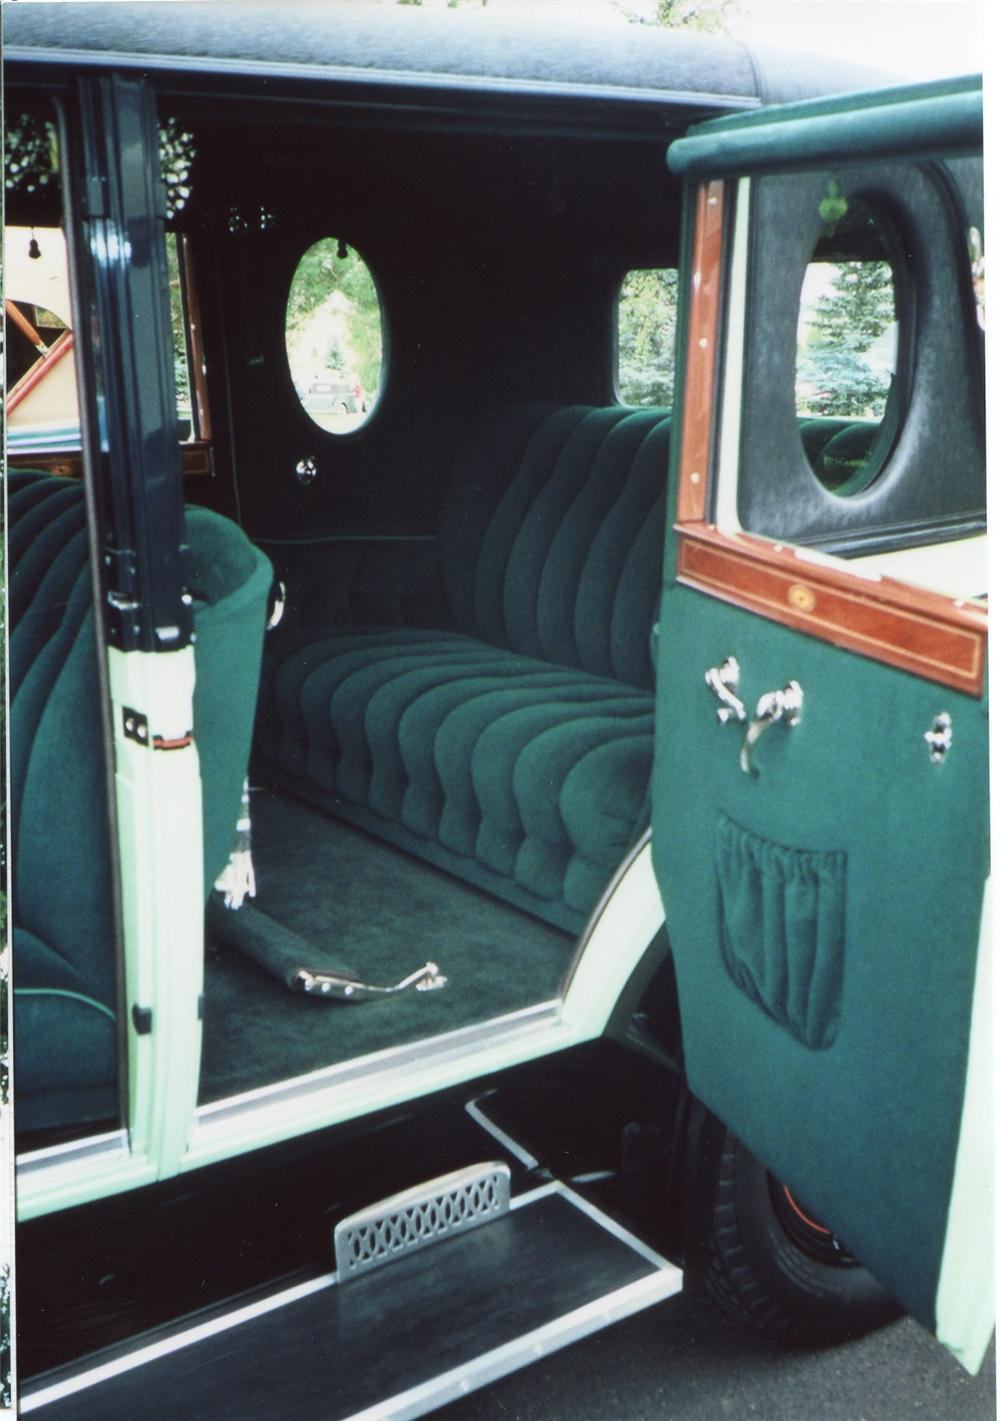 1927 BUICK 27-51 BROUGHAM SEDAN - Interior - 65742